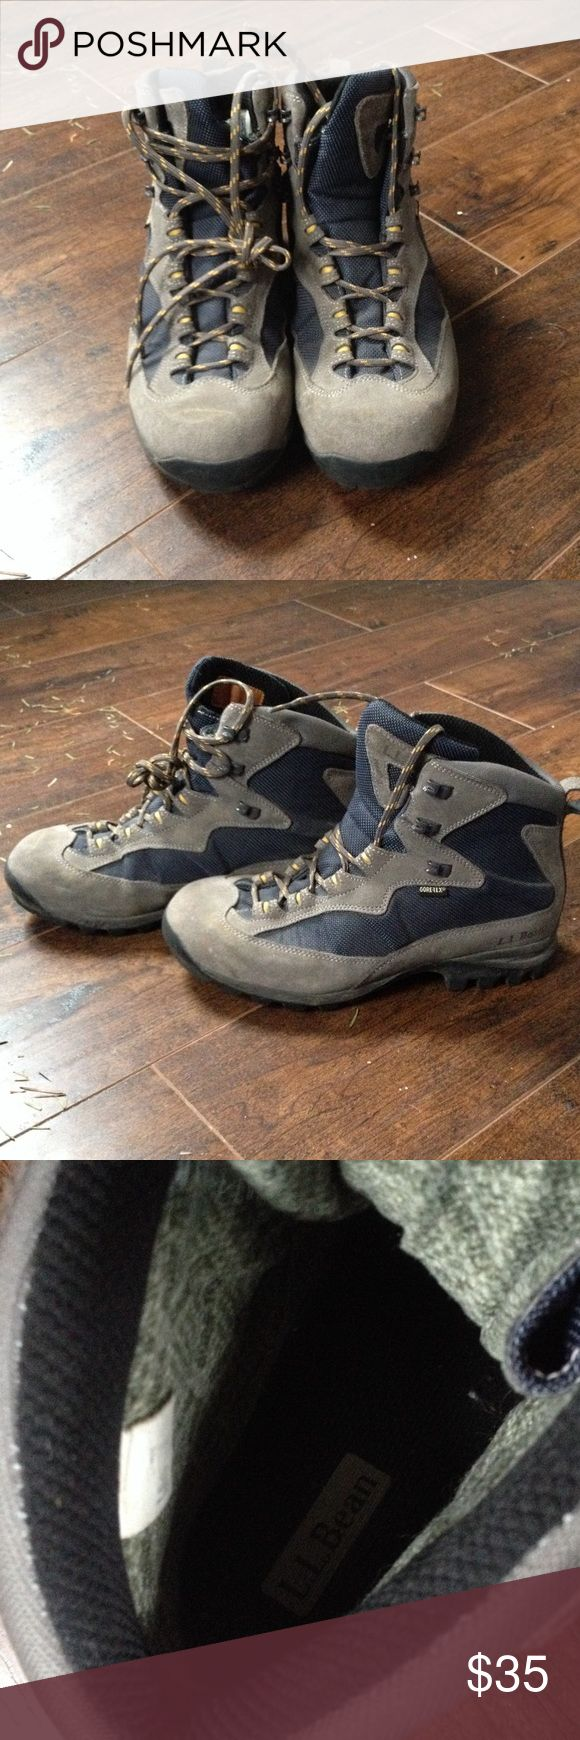 L.L. Bean Gore-Tex Hiking Boots size 7 Men's Only been worn once but needed a lower ankle support, fit to a women's 8.5-9! Bought new from LL Bean. L.L. Bean Shoes Winter & Rain Boots